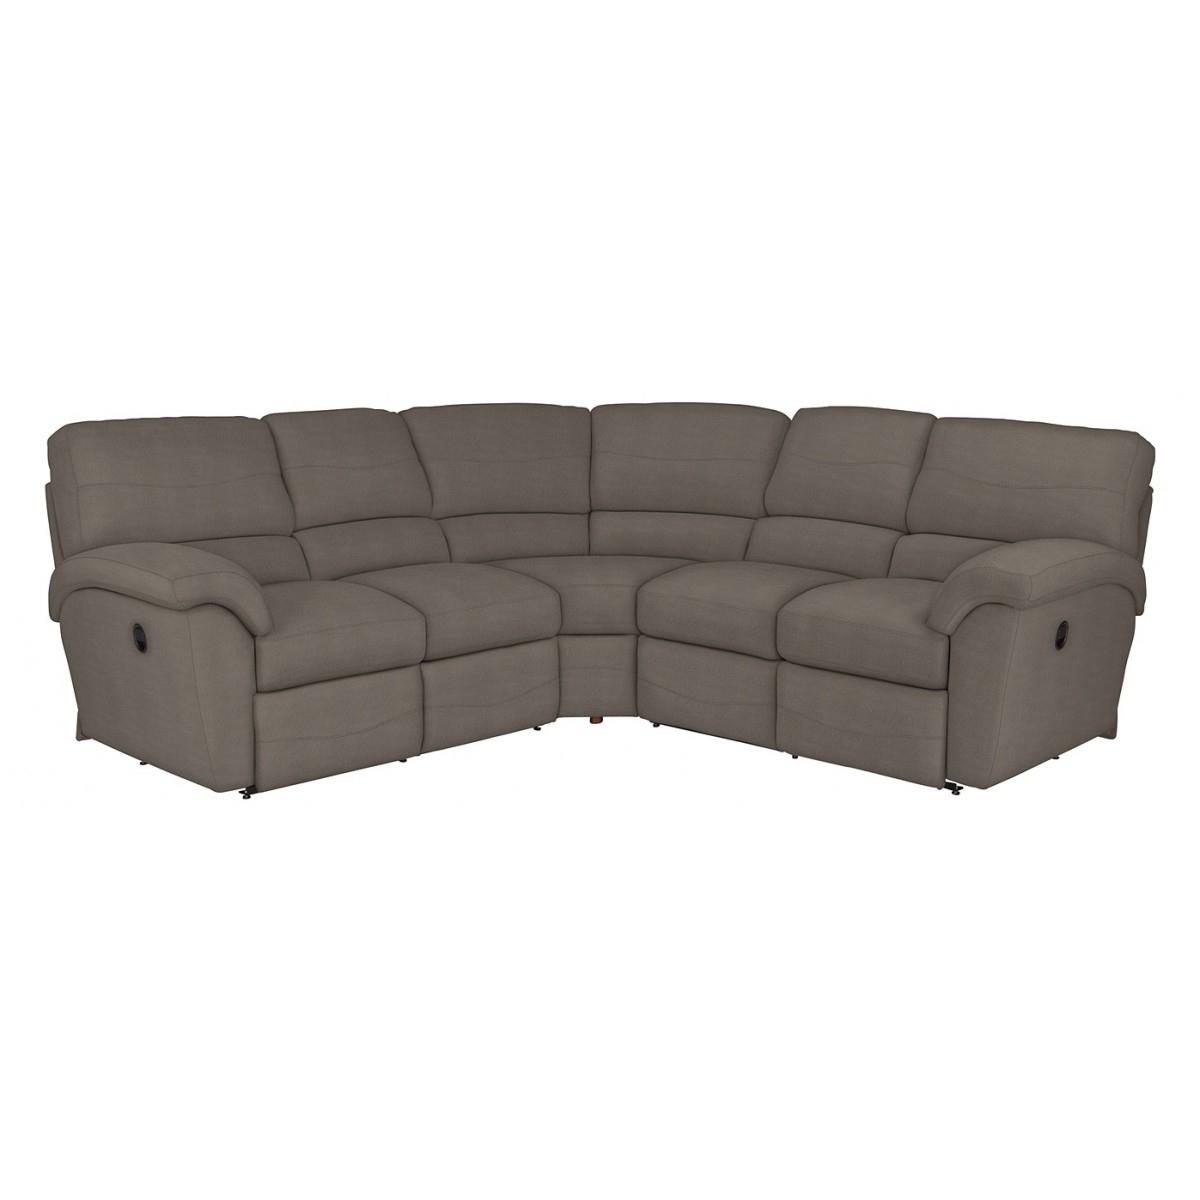 Widely Used Z Boy Reese Reclining Sectional Within Lazy Boy Sectional Sofas (View 9 of 20)